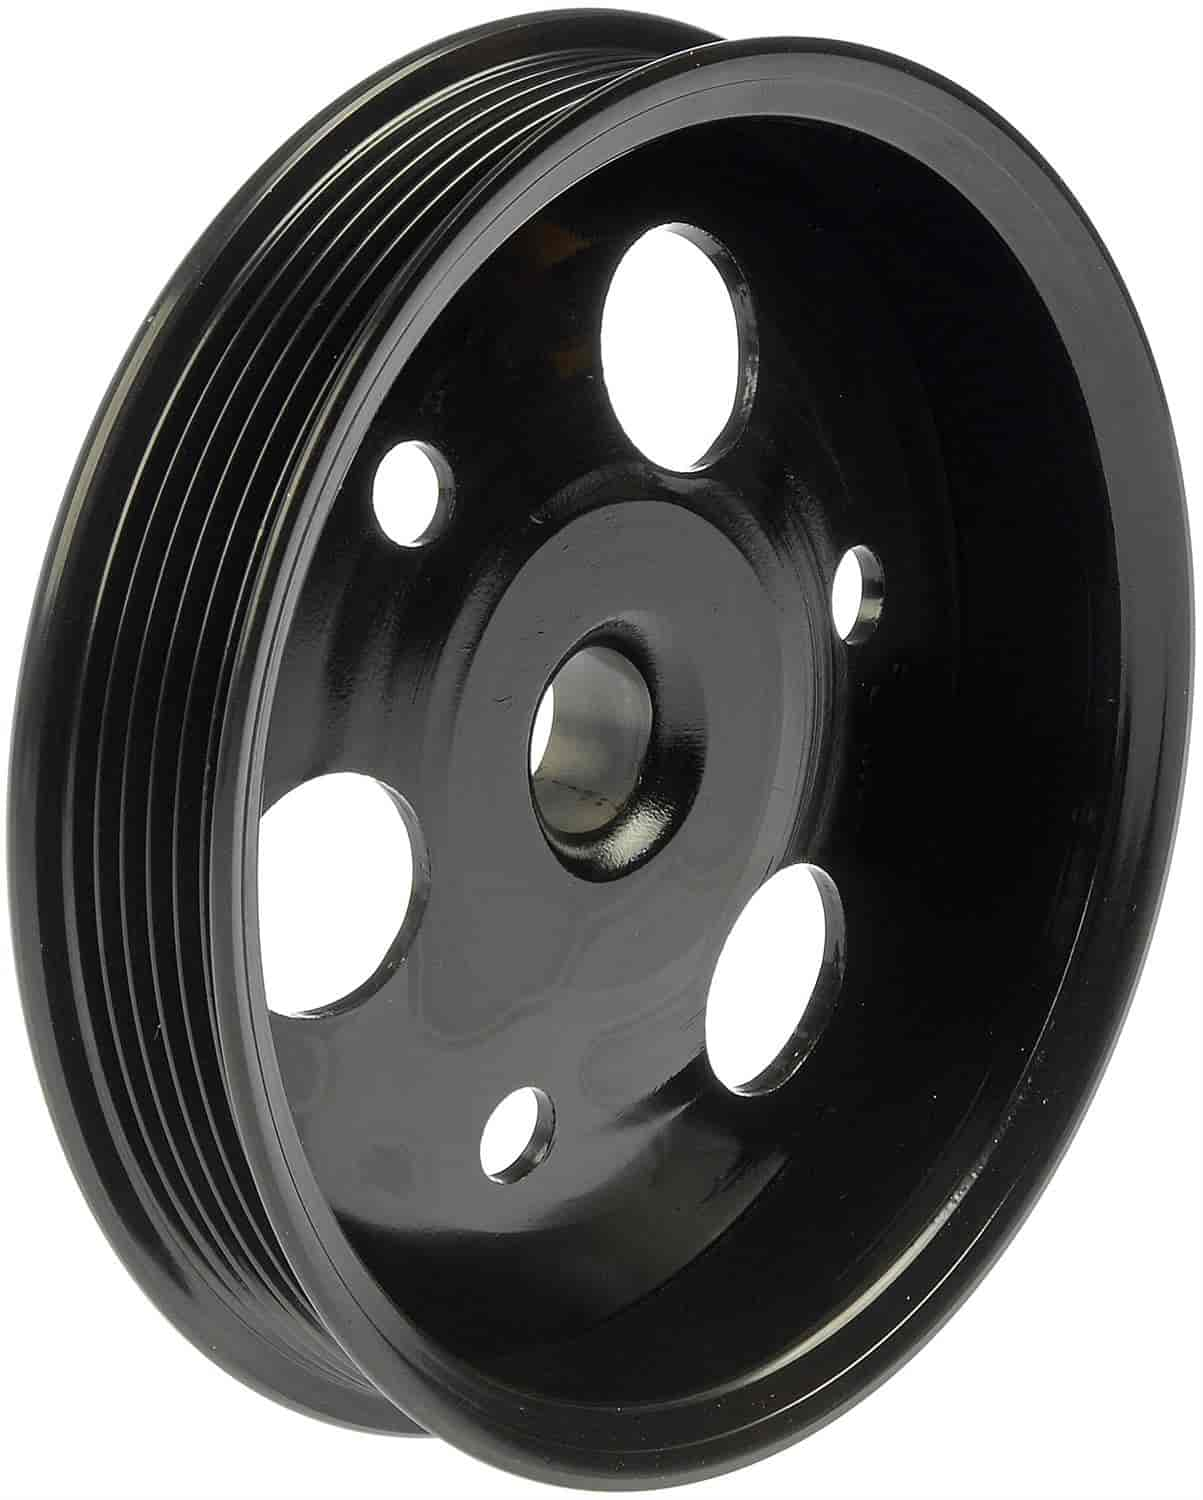 Dorman Products 300-130 - Dorman Power Steering Pump Pulleys